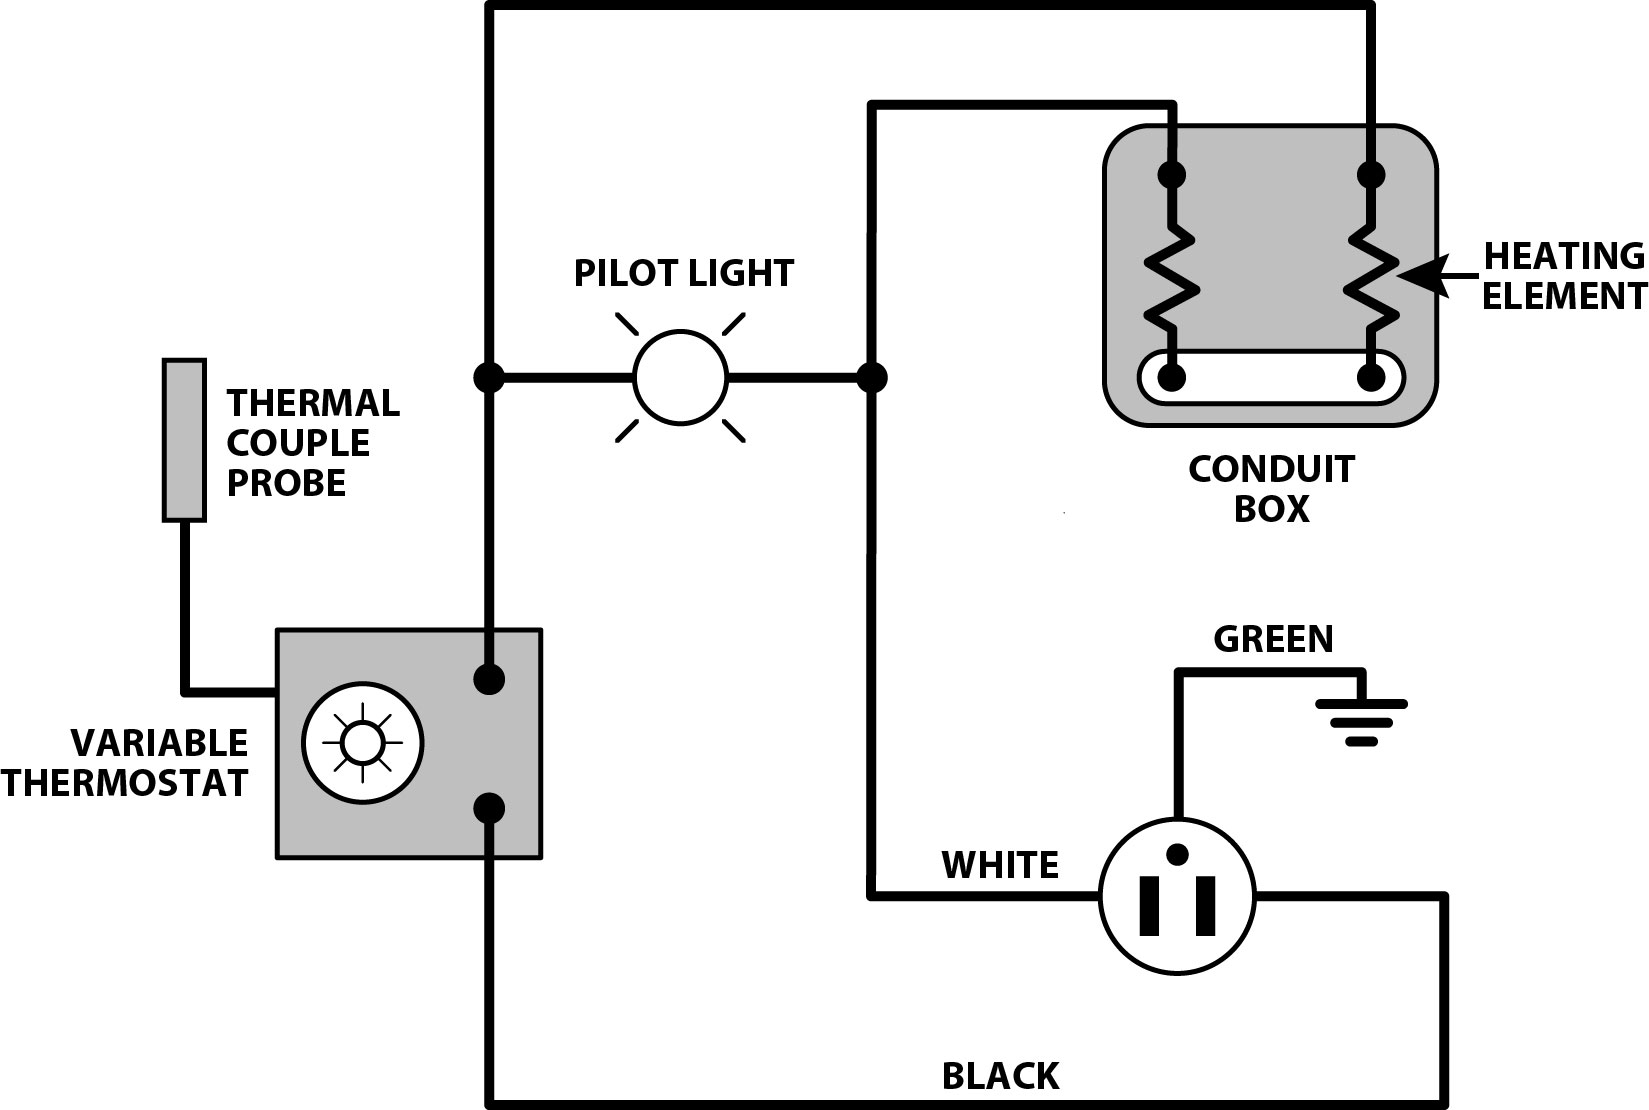 Delta Unisaw Single Phase Wiring Diagram as well 120 Volt Battery Wiring besides Allen Bradley Motor Starter Wiring Diagram as well How Does An Evaporative Cooler Sw  Cooler Work furthermore Powrcord. on 240 volt motor wiring diagram